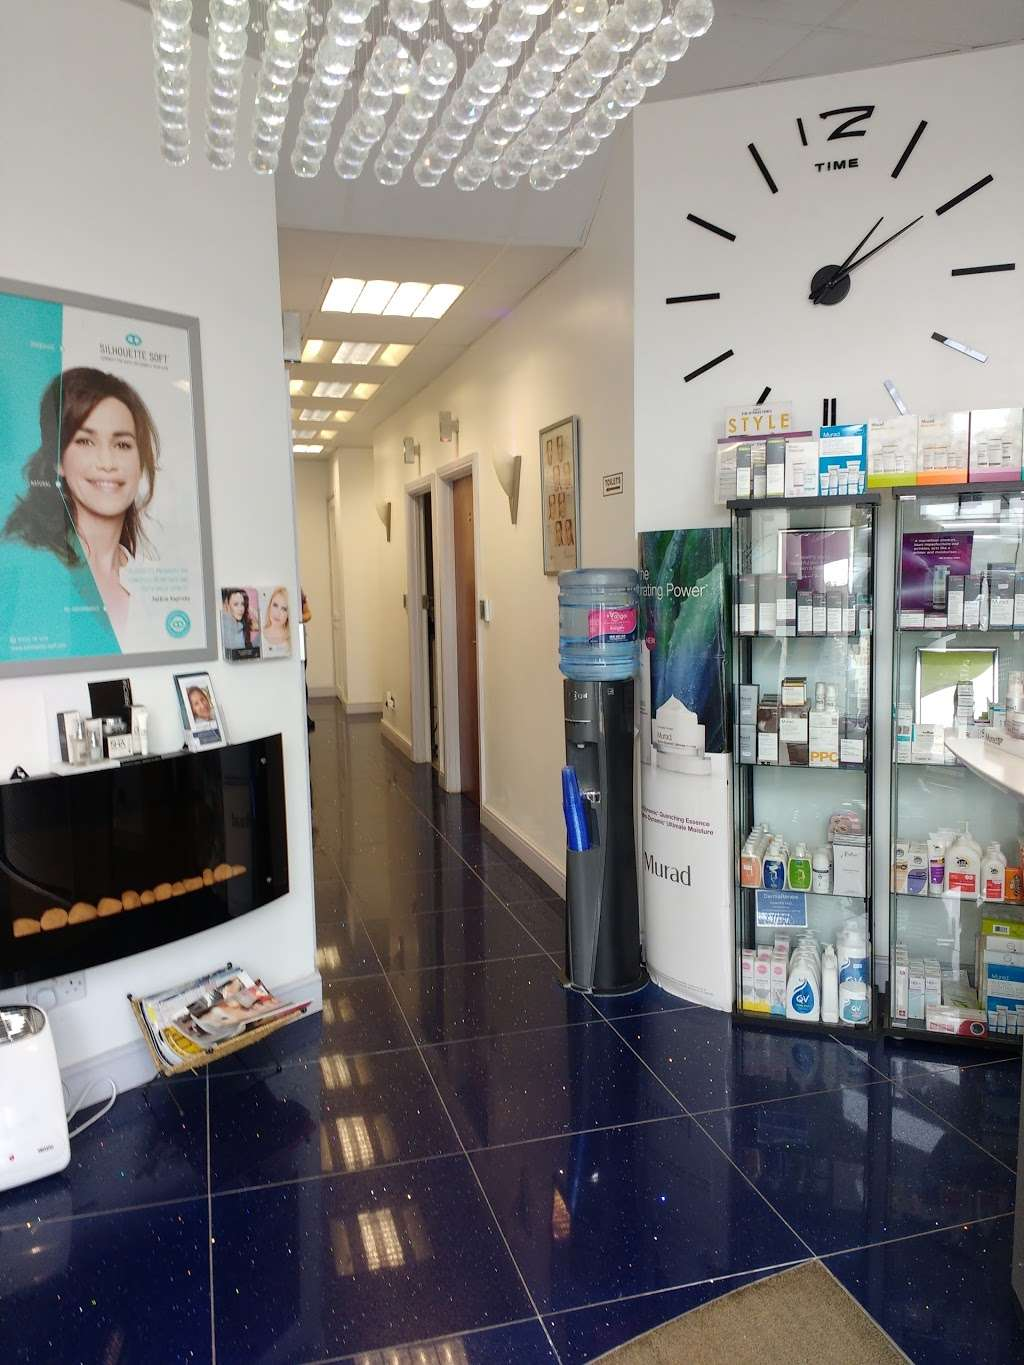 nlclinic - health  | Photo 9 of 10 | Address: 143/145 High St, London N14 6BP, UK | Phone: 020 8882 0957